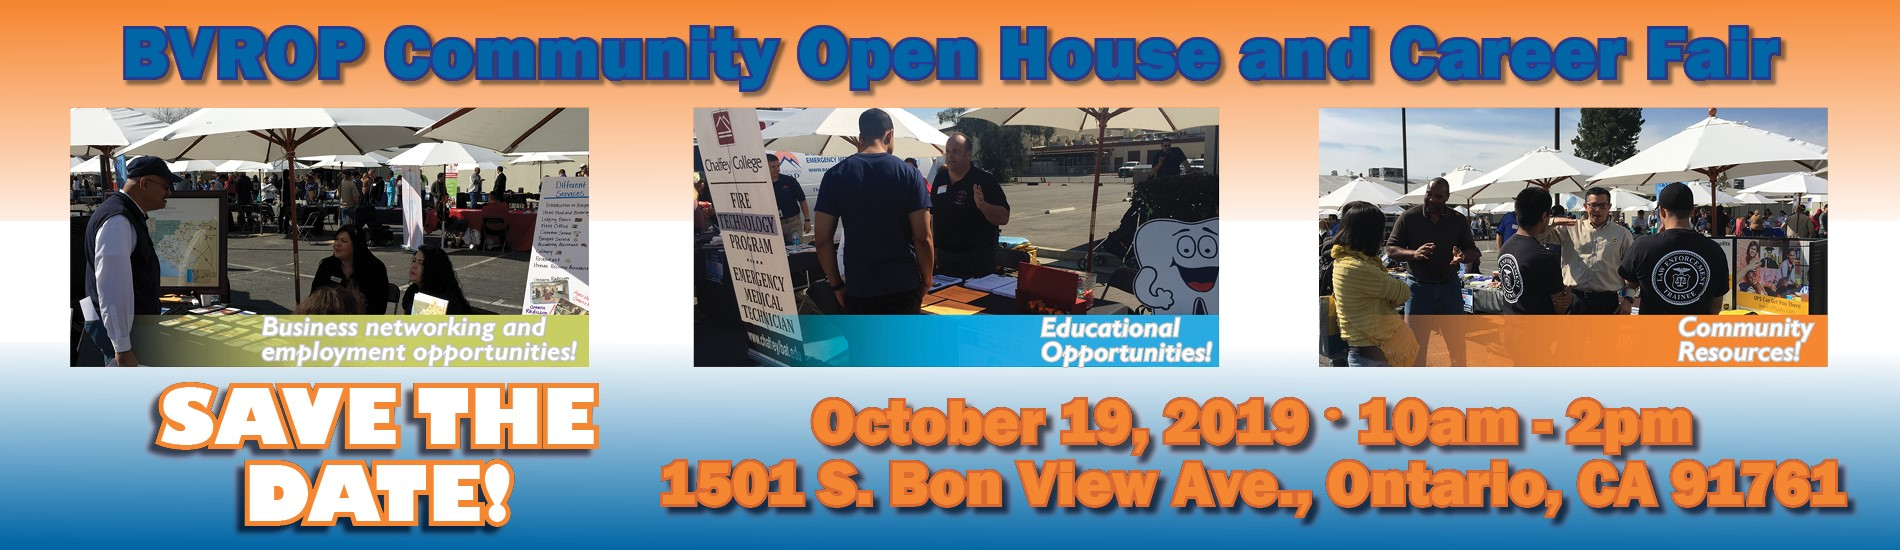 Baldy View ROP Community Open House and Career Fair 10/19/19 10am-2pm